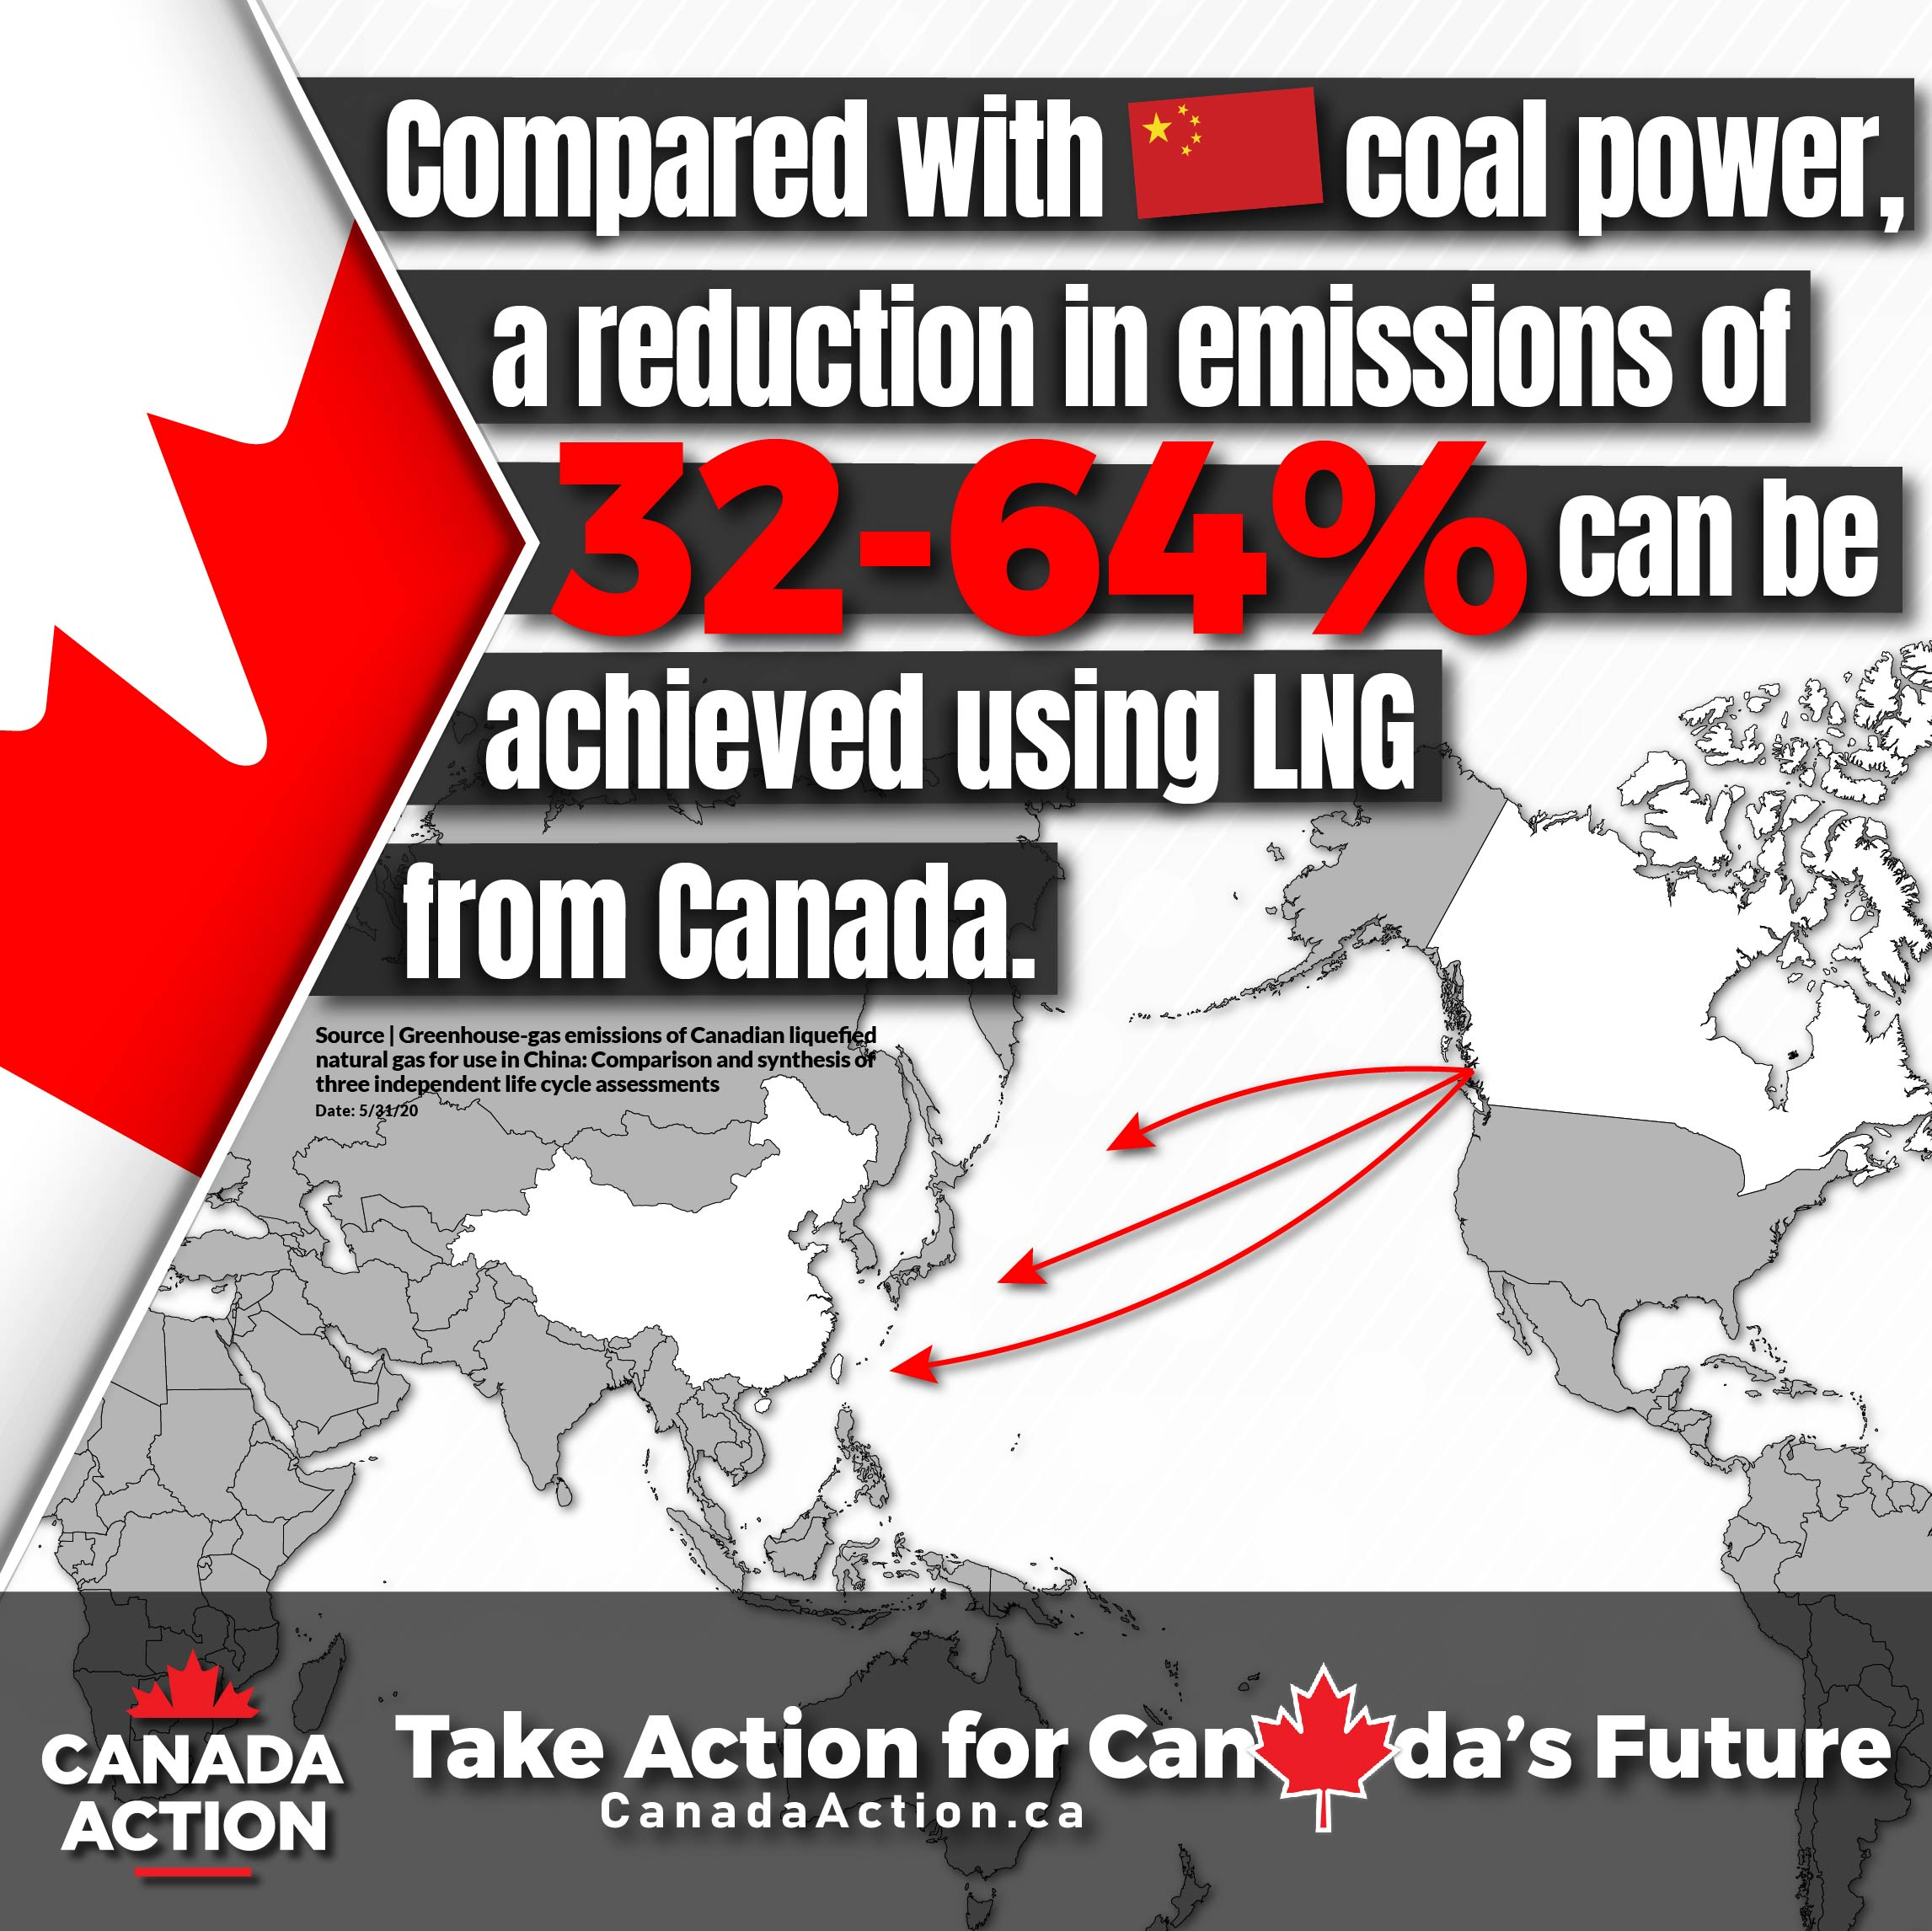 Canadian LNG to China for heat and power can reduce GHG emissions